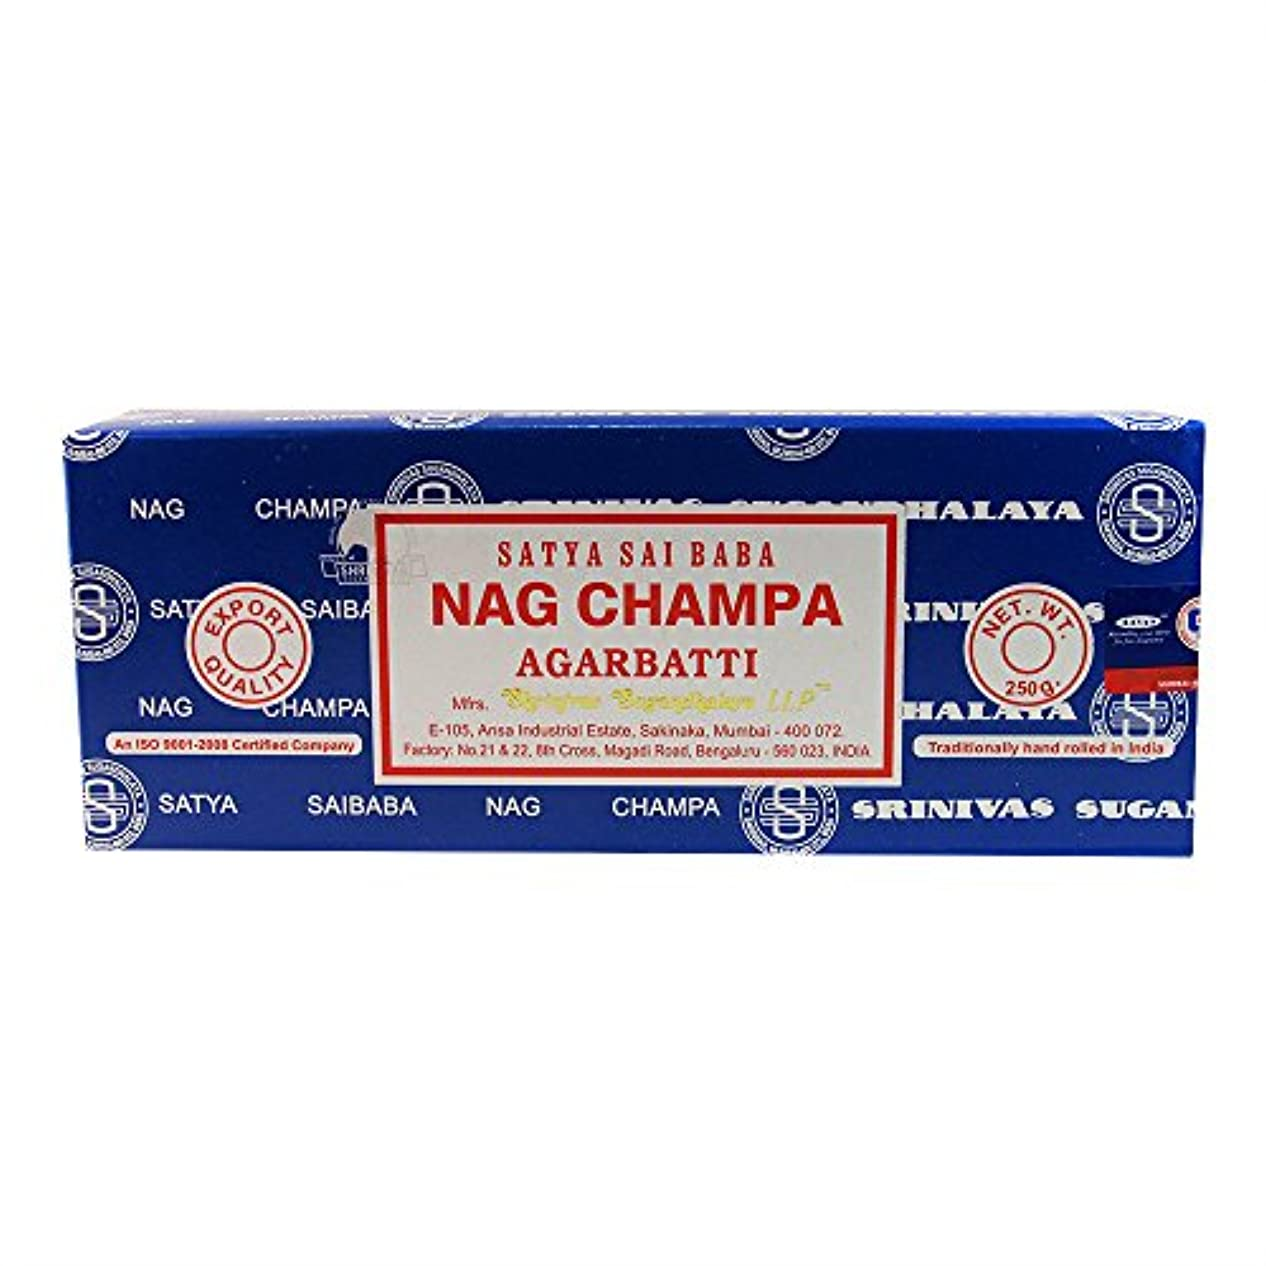 痛い進捗事前海外直送品Nag Champa Incense, 250 GRAMS by Sai Baba